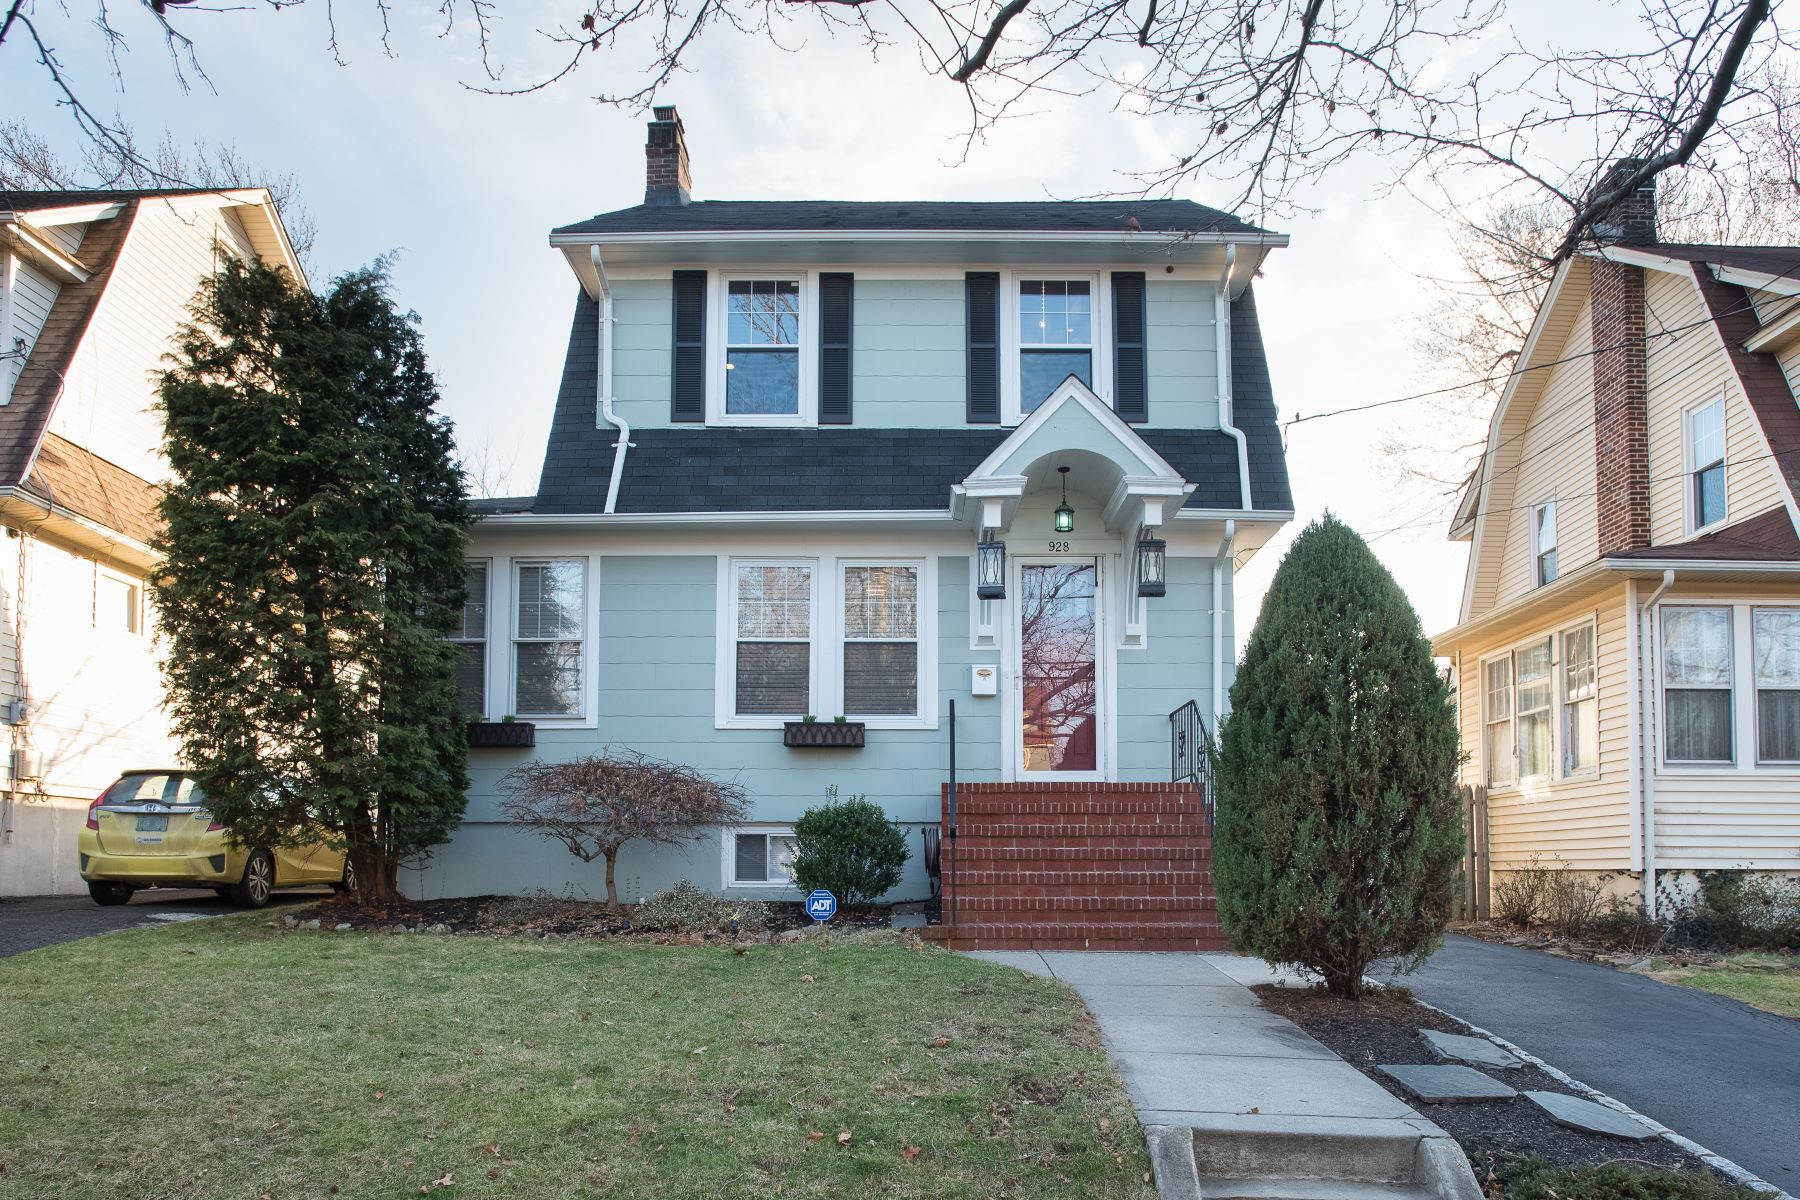 Single Family Home for Sale at Charming Dutch Colonial 928 Columbus Ave, Westfield, New Jersey, 07090 United States